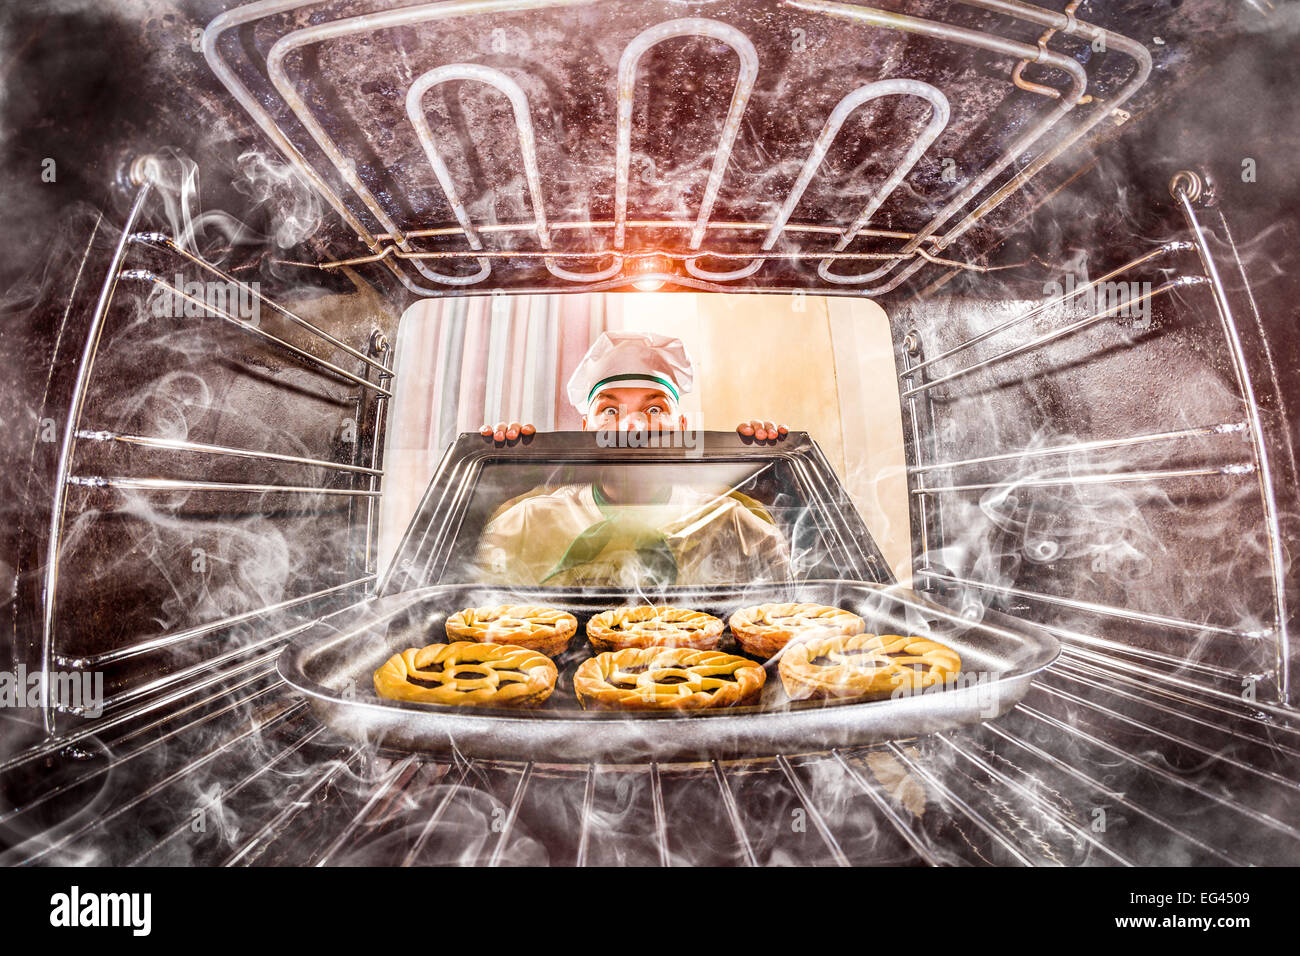 Funny chef overlooked pastries in the oven, so she had scorched, view from the inside of the oven. Cook perplexed - Stock Image